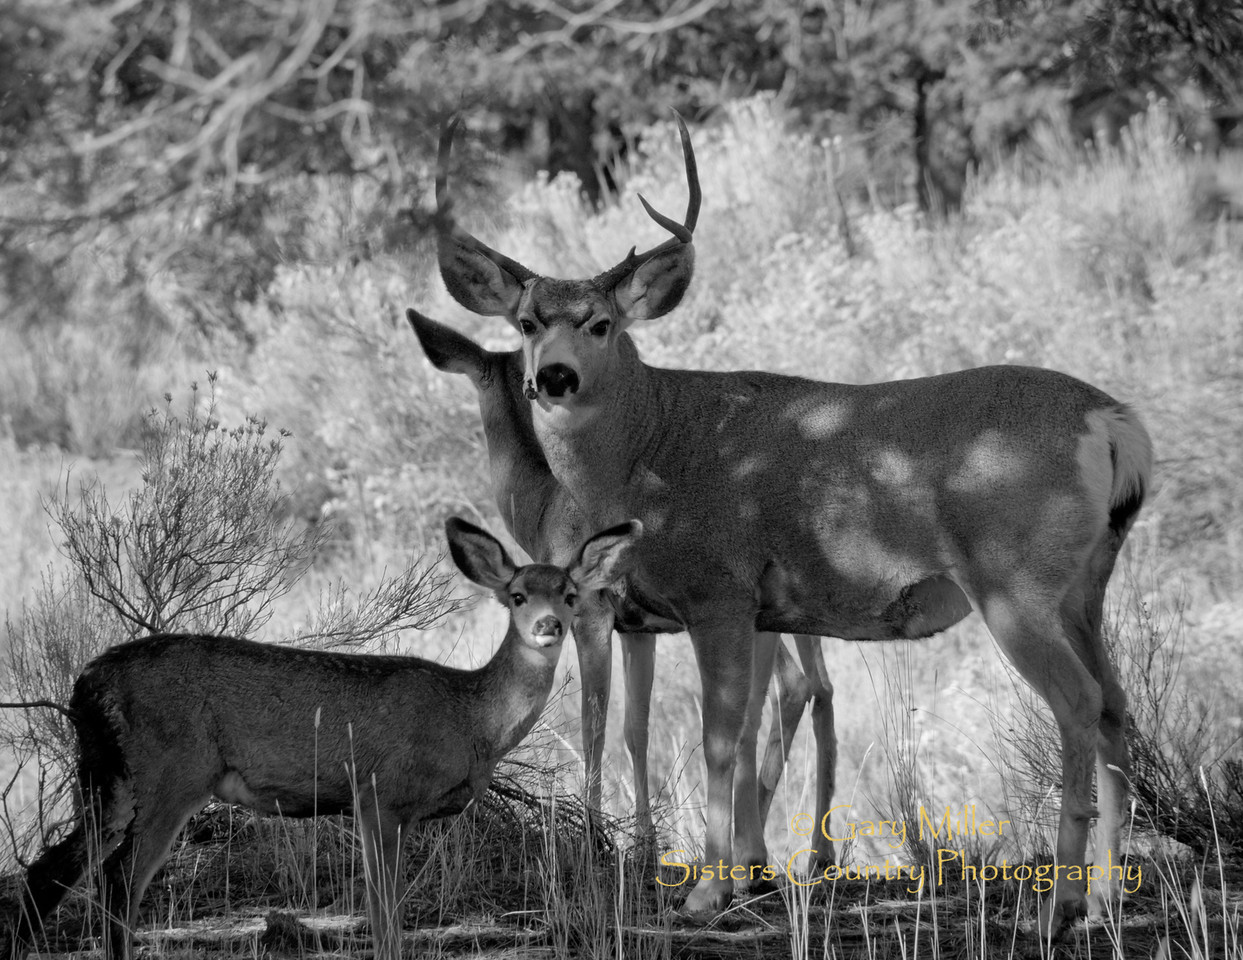 A handsome buck finds time during prime hunting season to share a moment with his family. A close inspection of his right jaw shows what appears be a wound from a previous violent encounter of some type. - Gary Miller